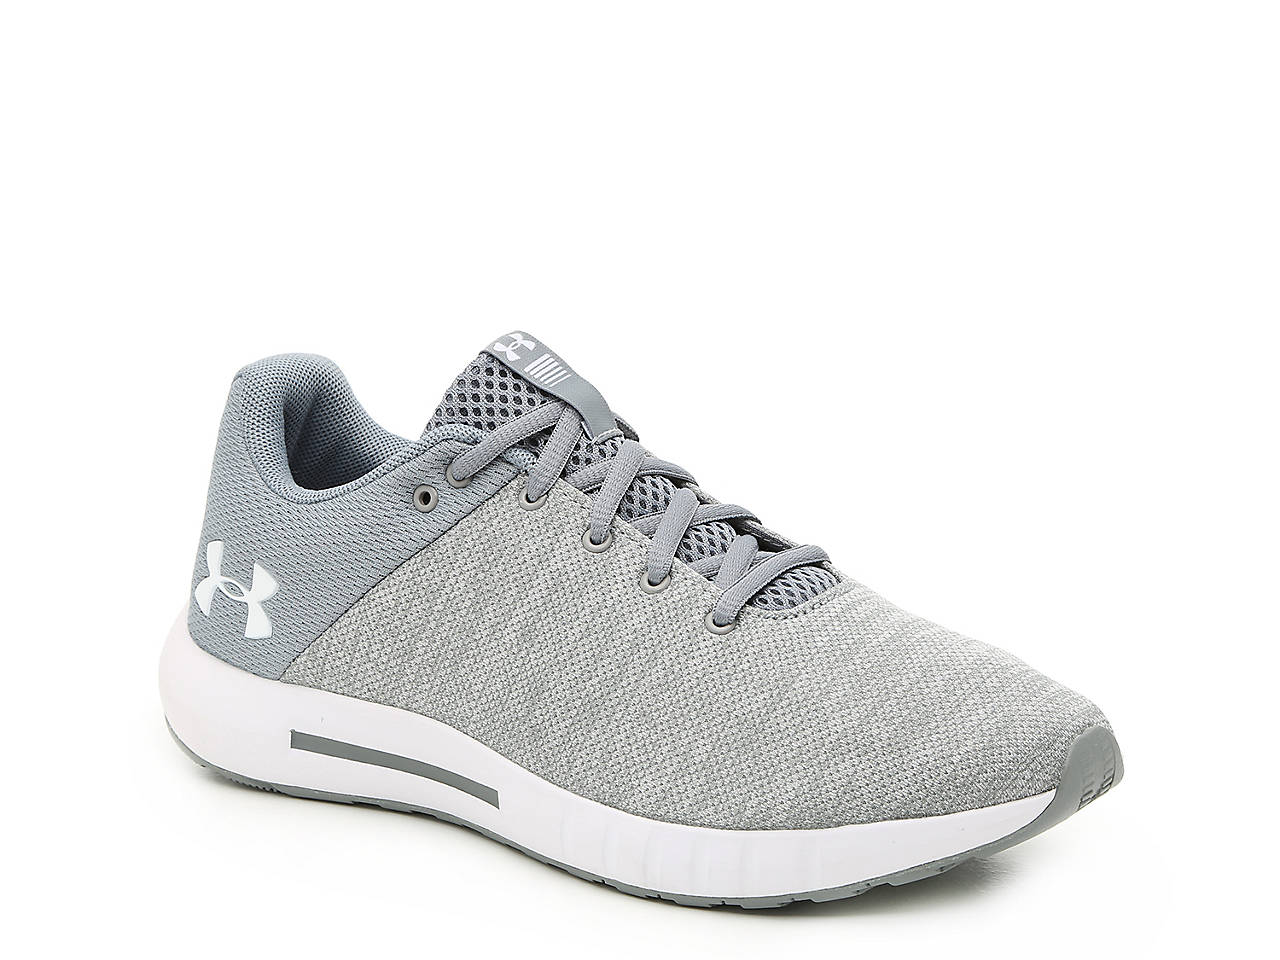 Under Armour Micro G Pursuit Twist Lightweight Running Shoe ... 535d36f562